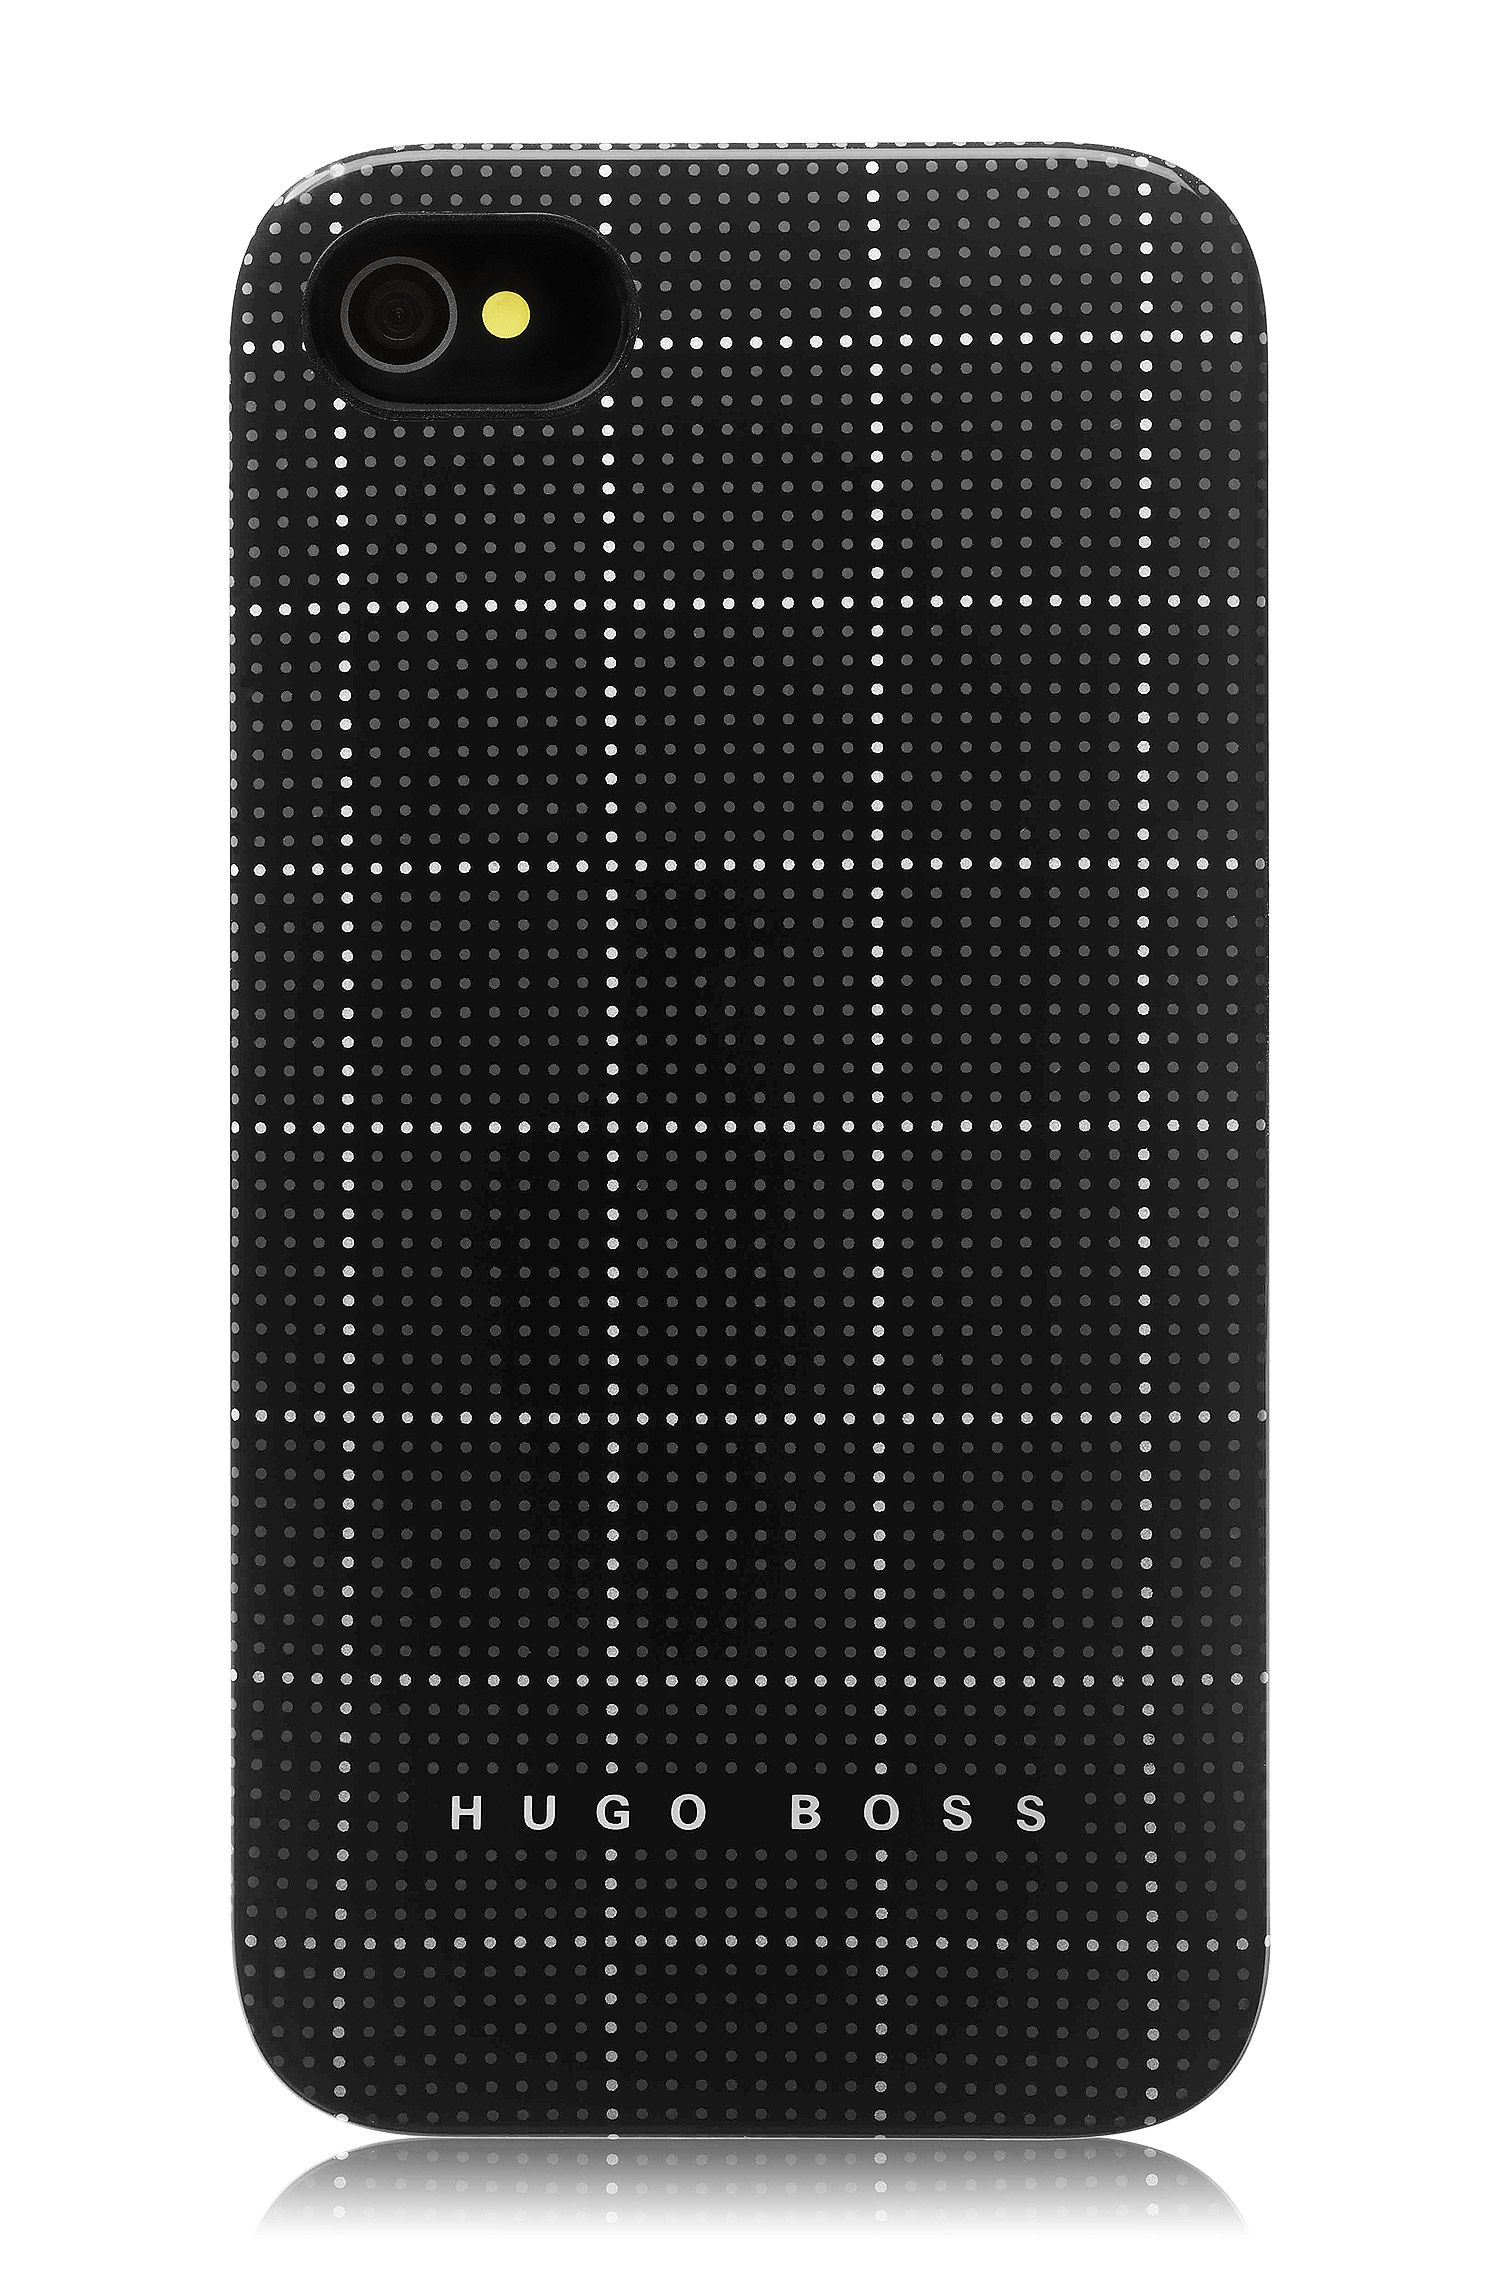 Coque rigide pour iPhone 4/4S, Squares Black